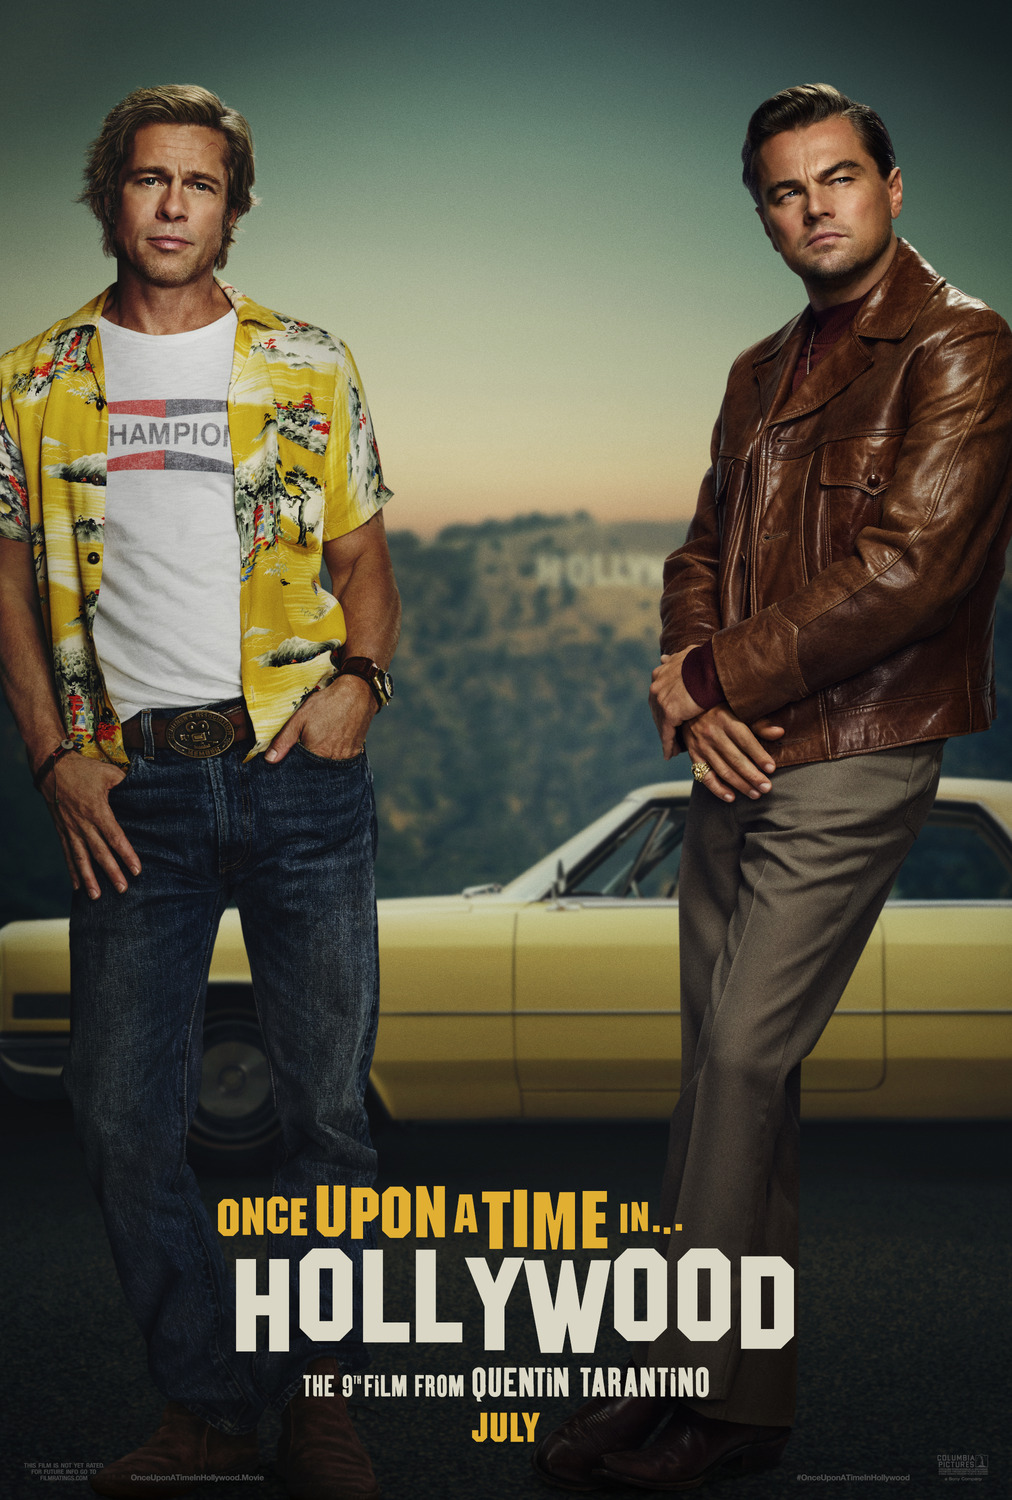 Once Upon a Time in Hollywood Ne Zaman?